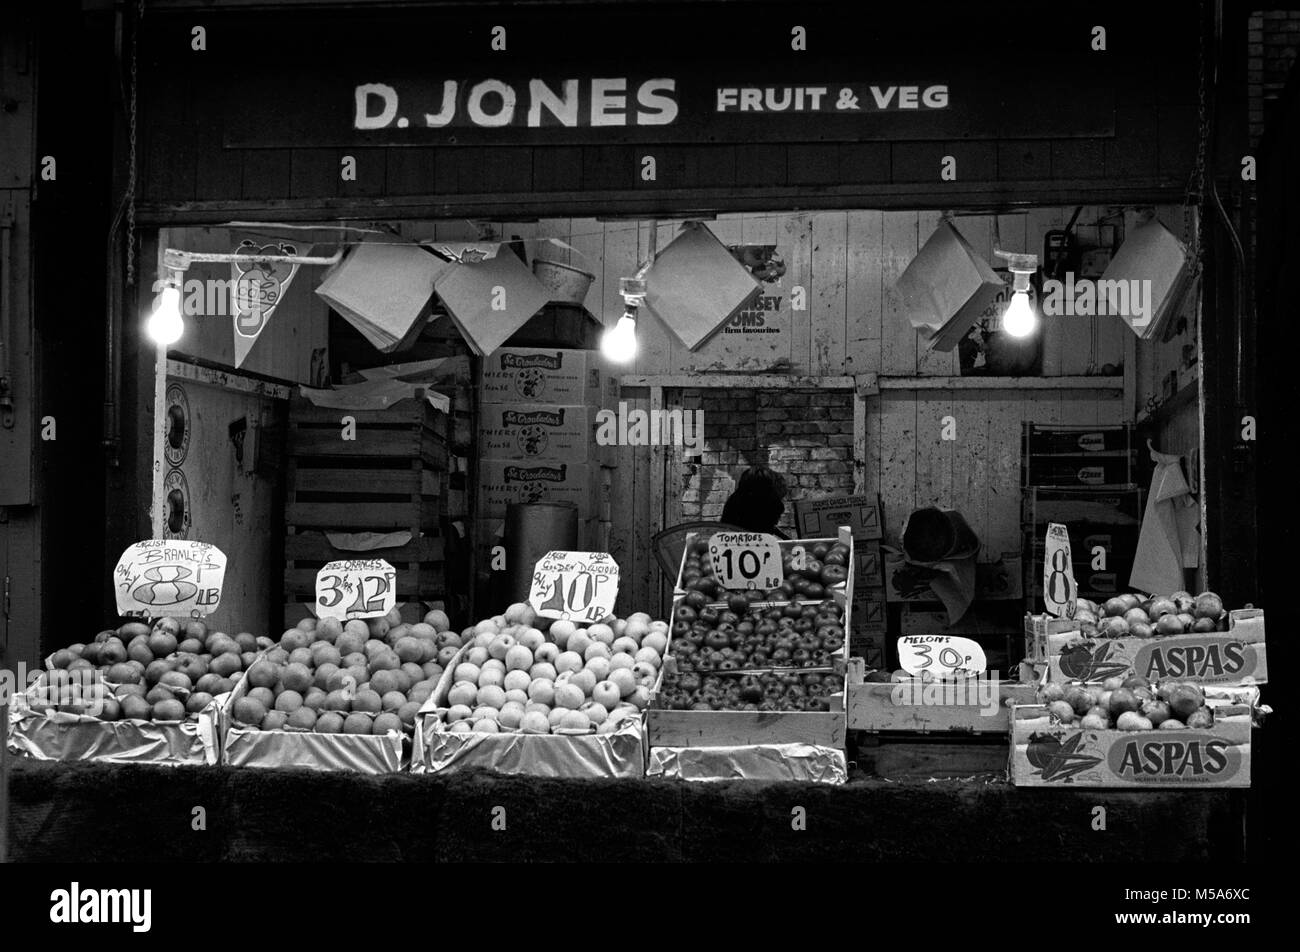 UK, Wales, Cardiff, City Centre, The Hayes, old Cardiff Open Market, D Jones' fruit and vegetable Stall in early - Stock Image